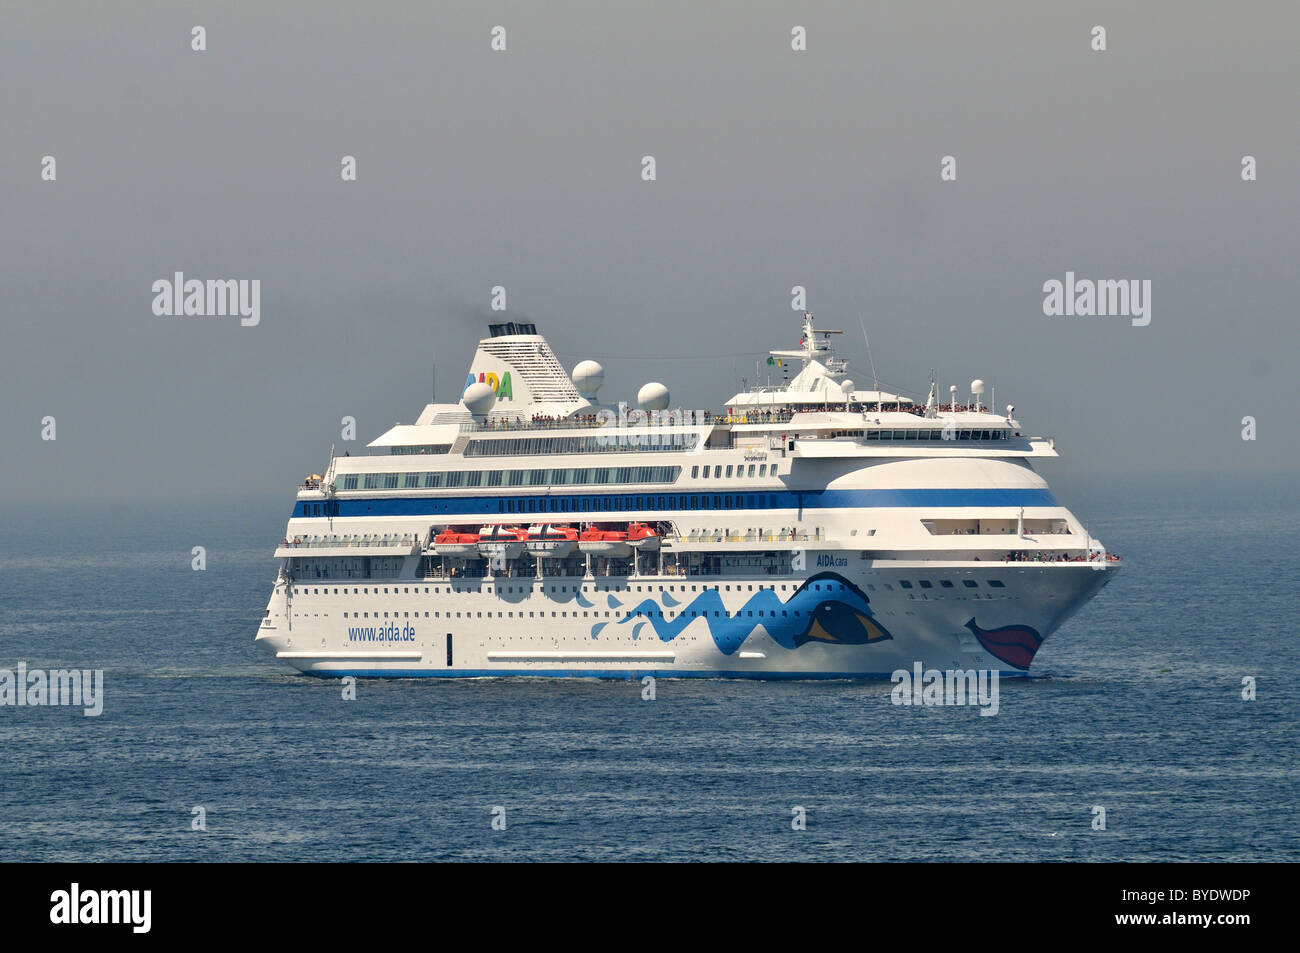 Cruise ship of the German company AIDA Cruises, Rio de Janeiro, Brazil, South America - Stock Image